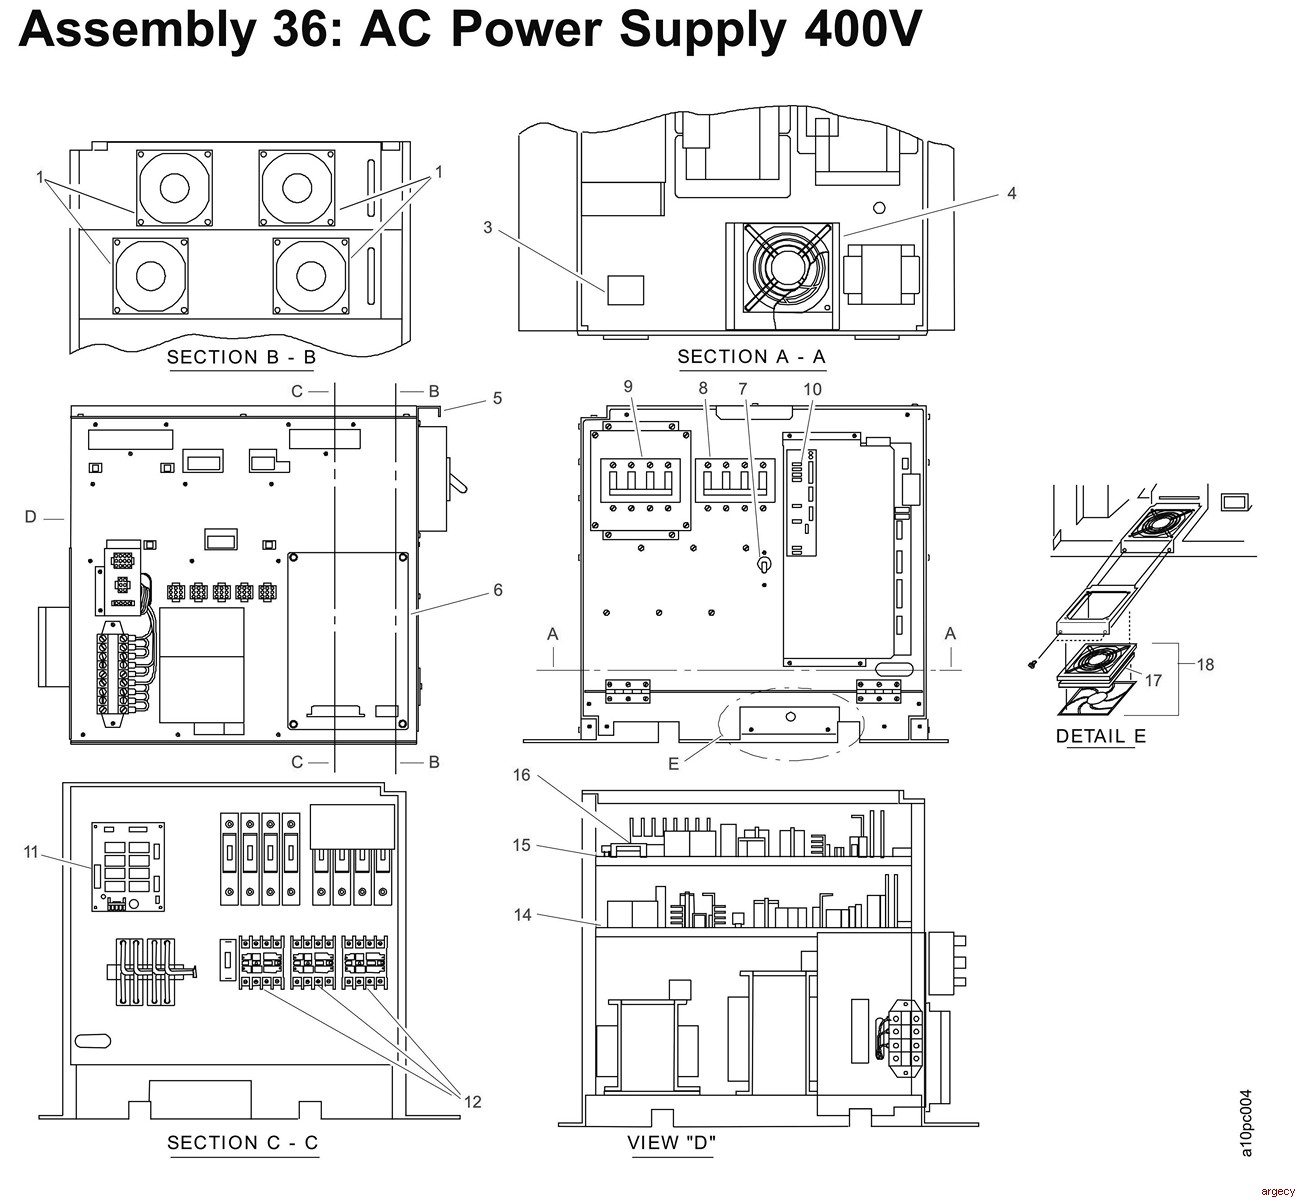 Assembly 32 Fuser Control Box Thru 36 Ac Power Supply